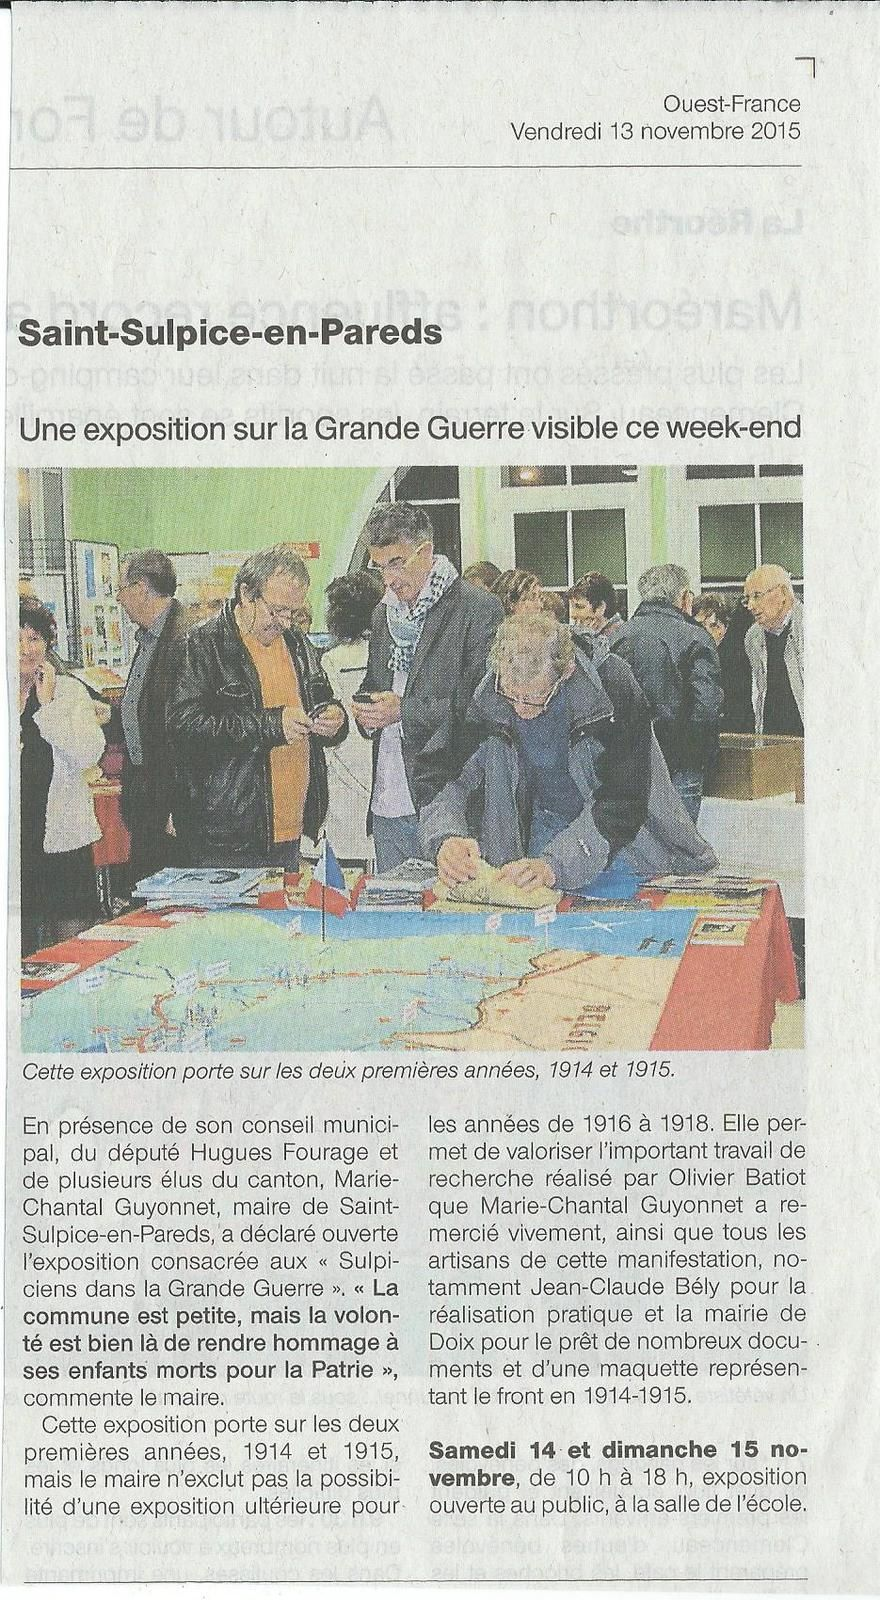 Expo Saint Sulpice en Pareds Ouest France 13 11 2015